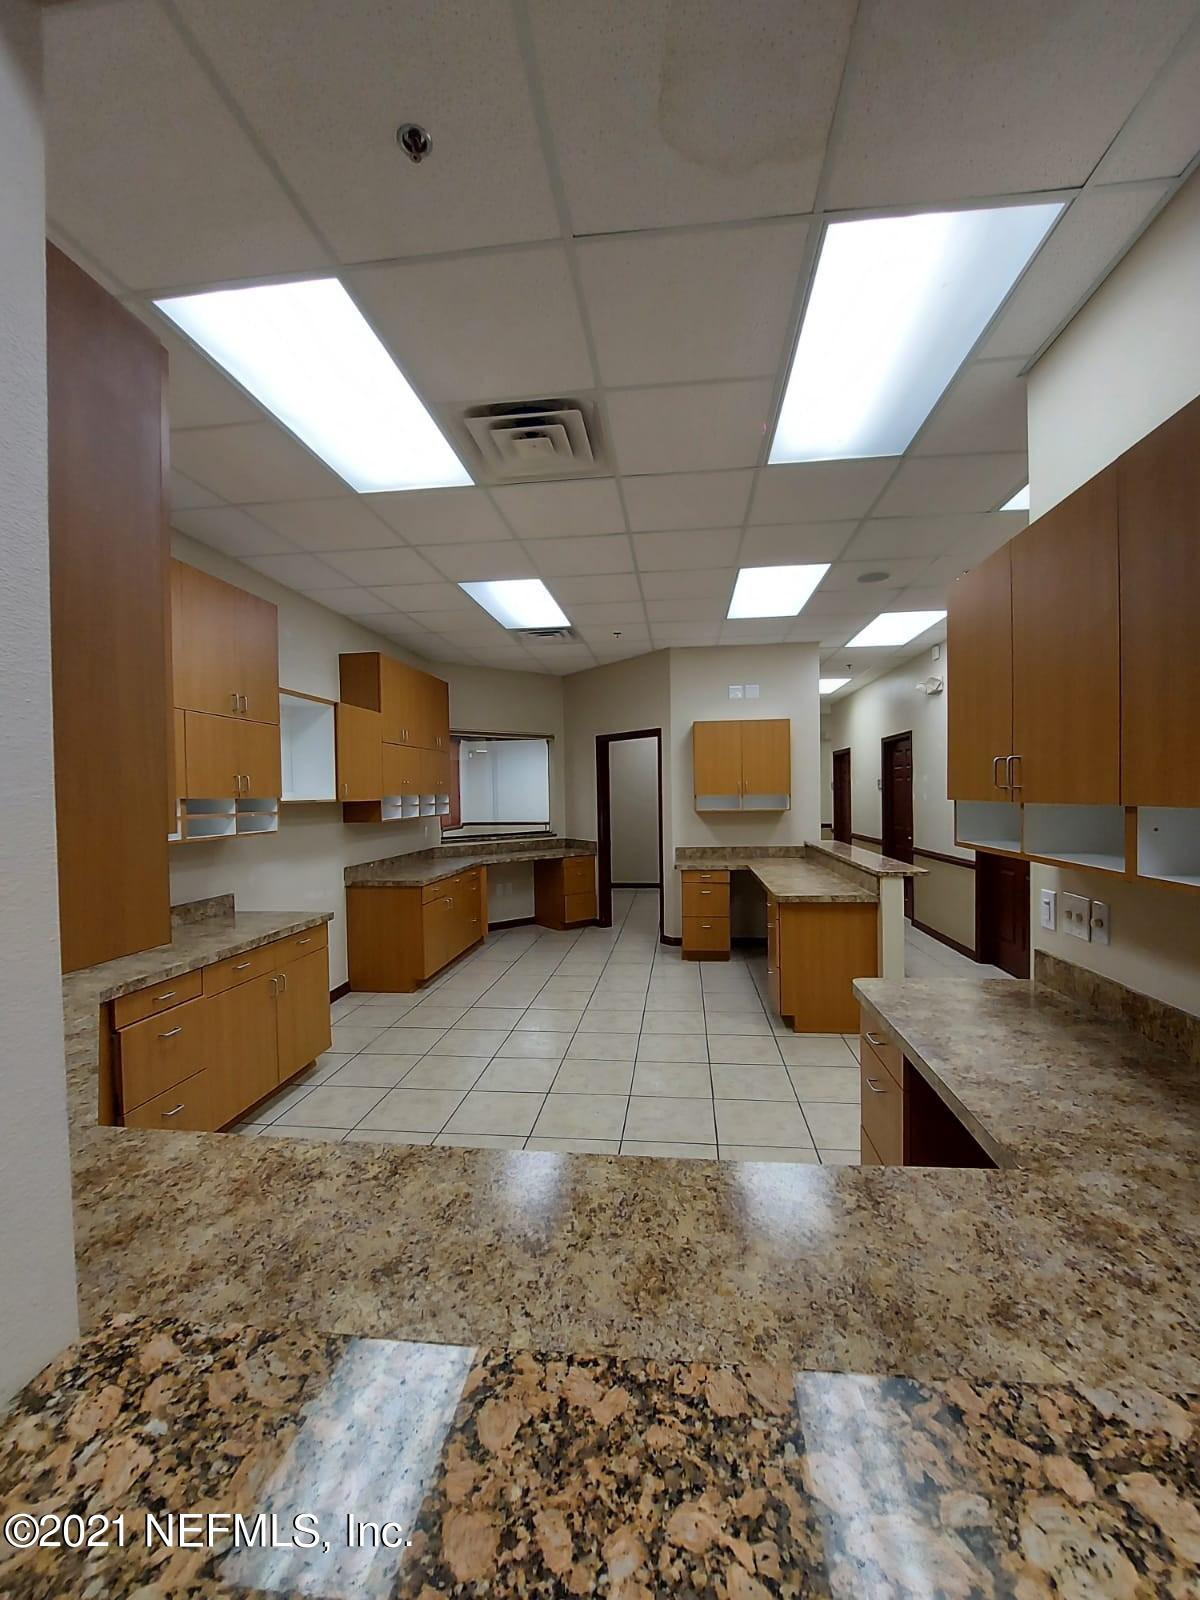 4151 HUNTERS PARK, ORLANDO, FLORIDA 32837, ,Commercial,For sale,HUNTERS PARK,1089940